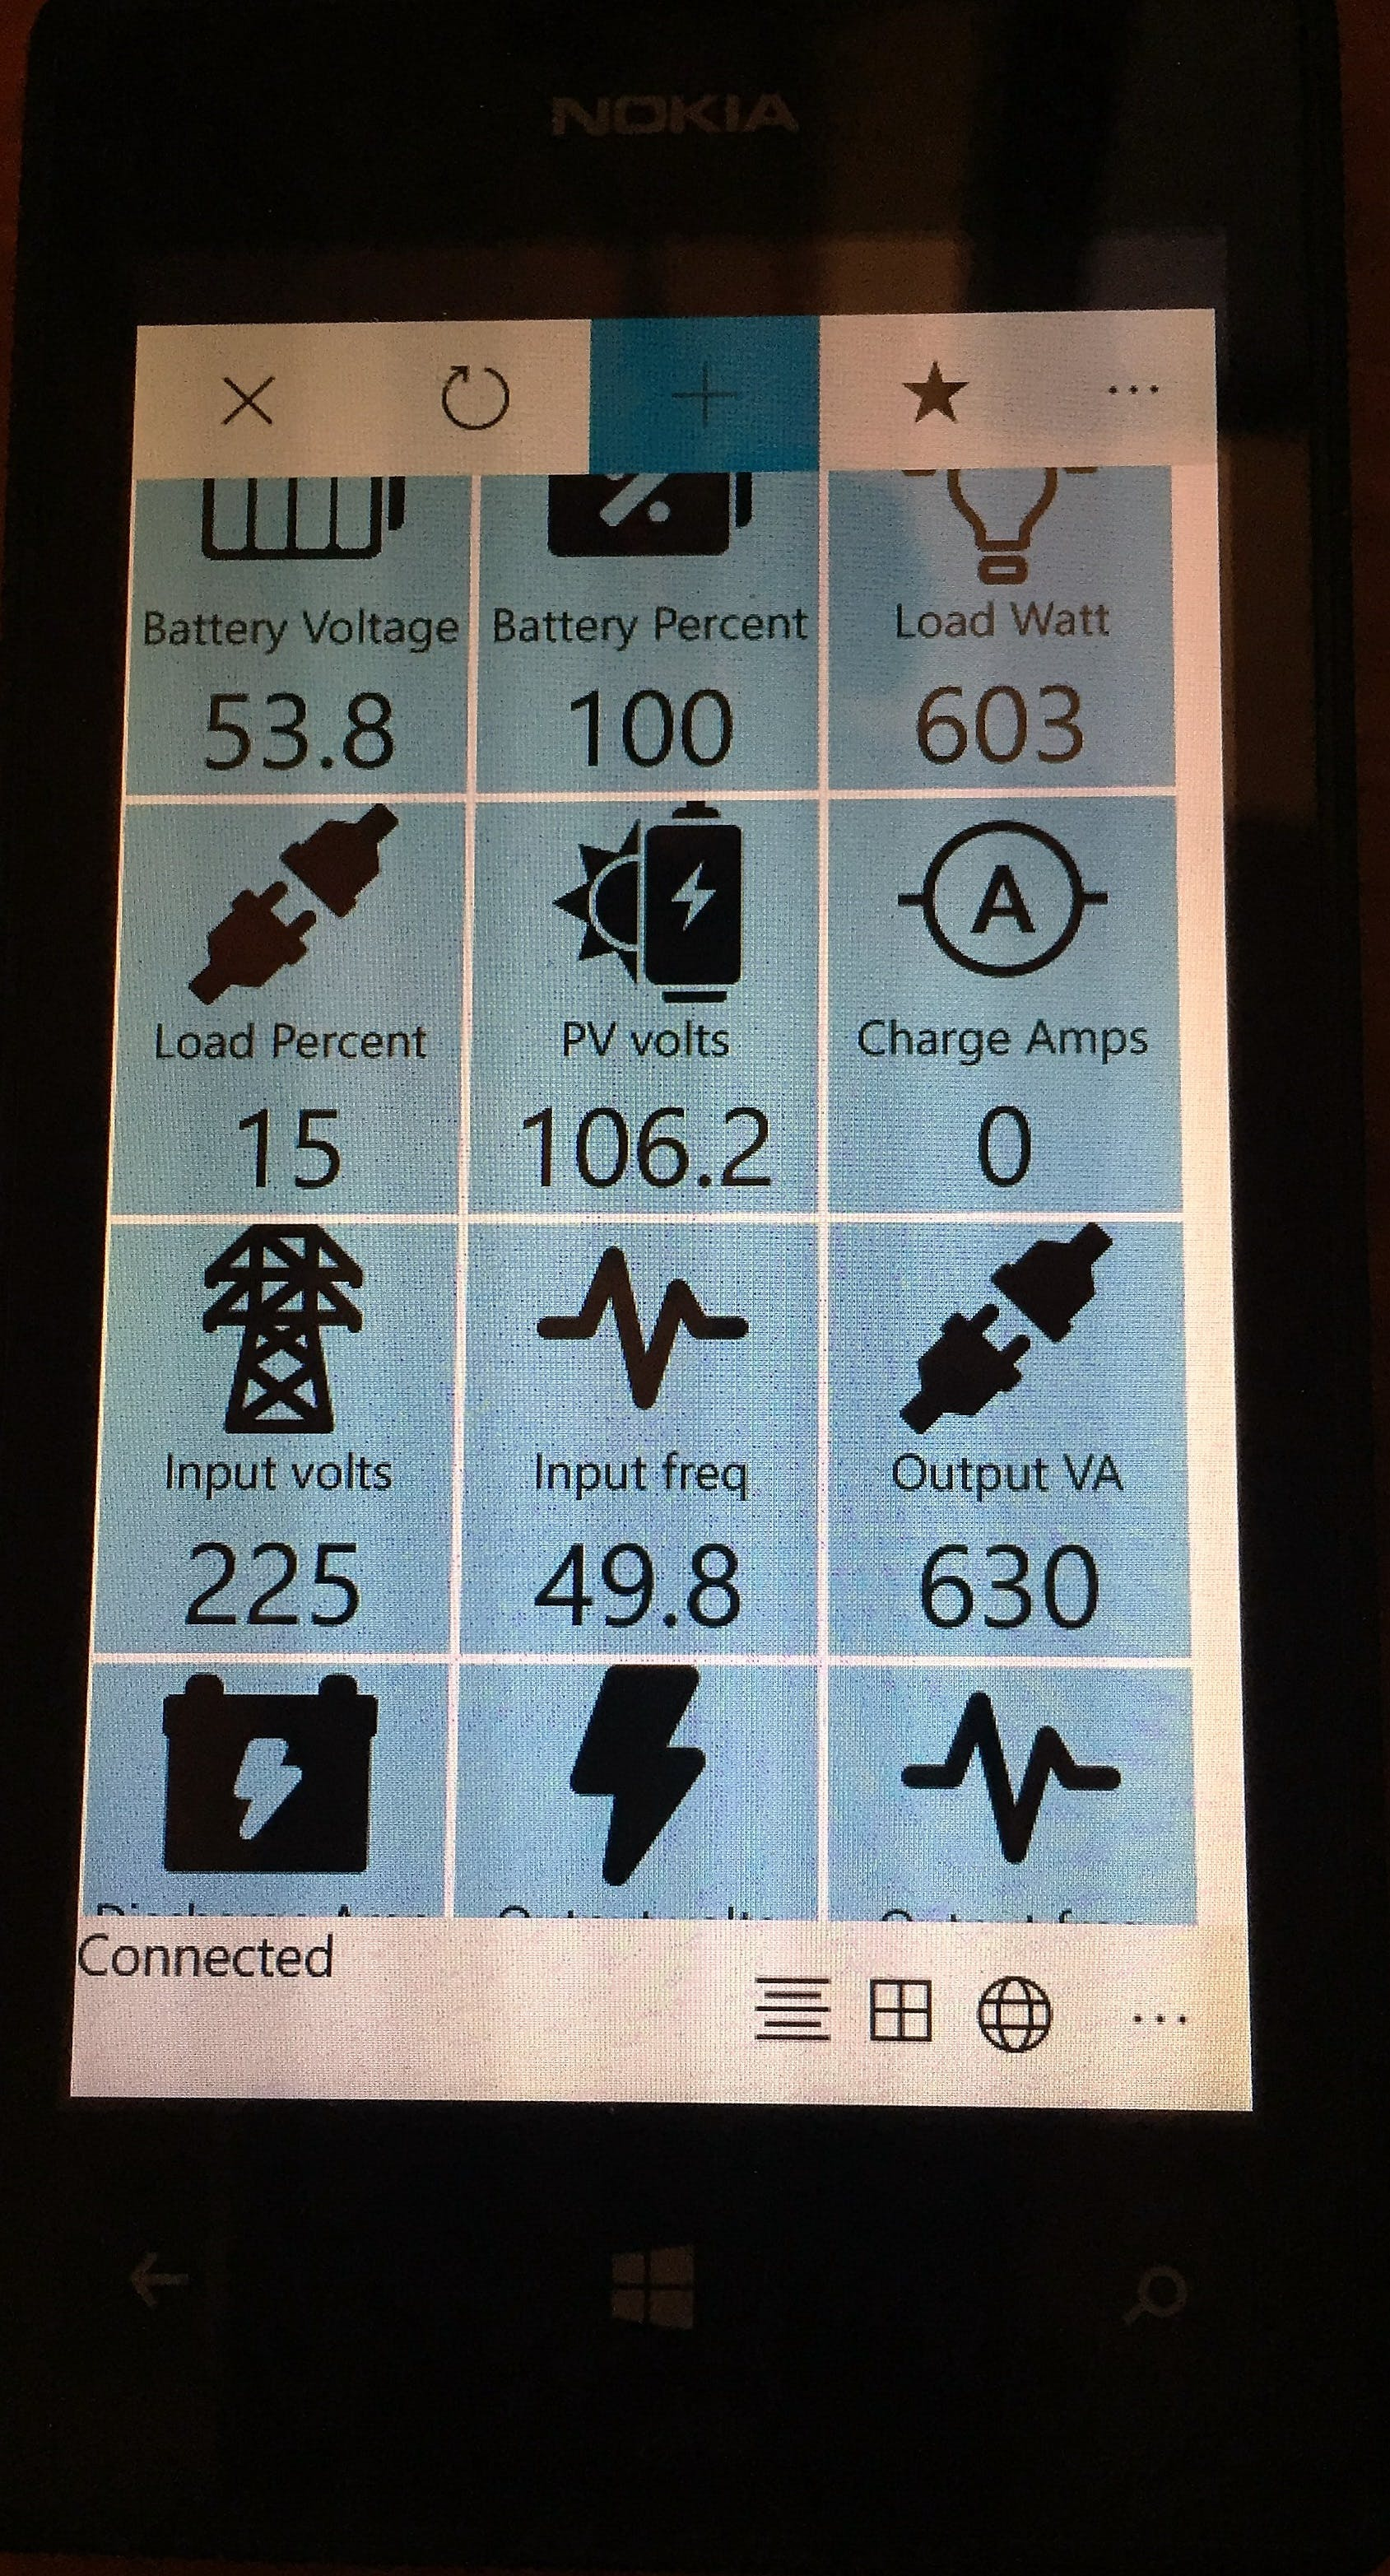 The app displaying UPS/inverter data